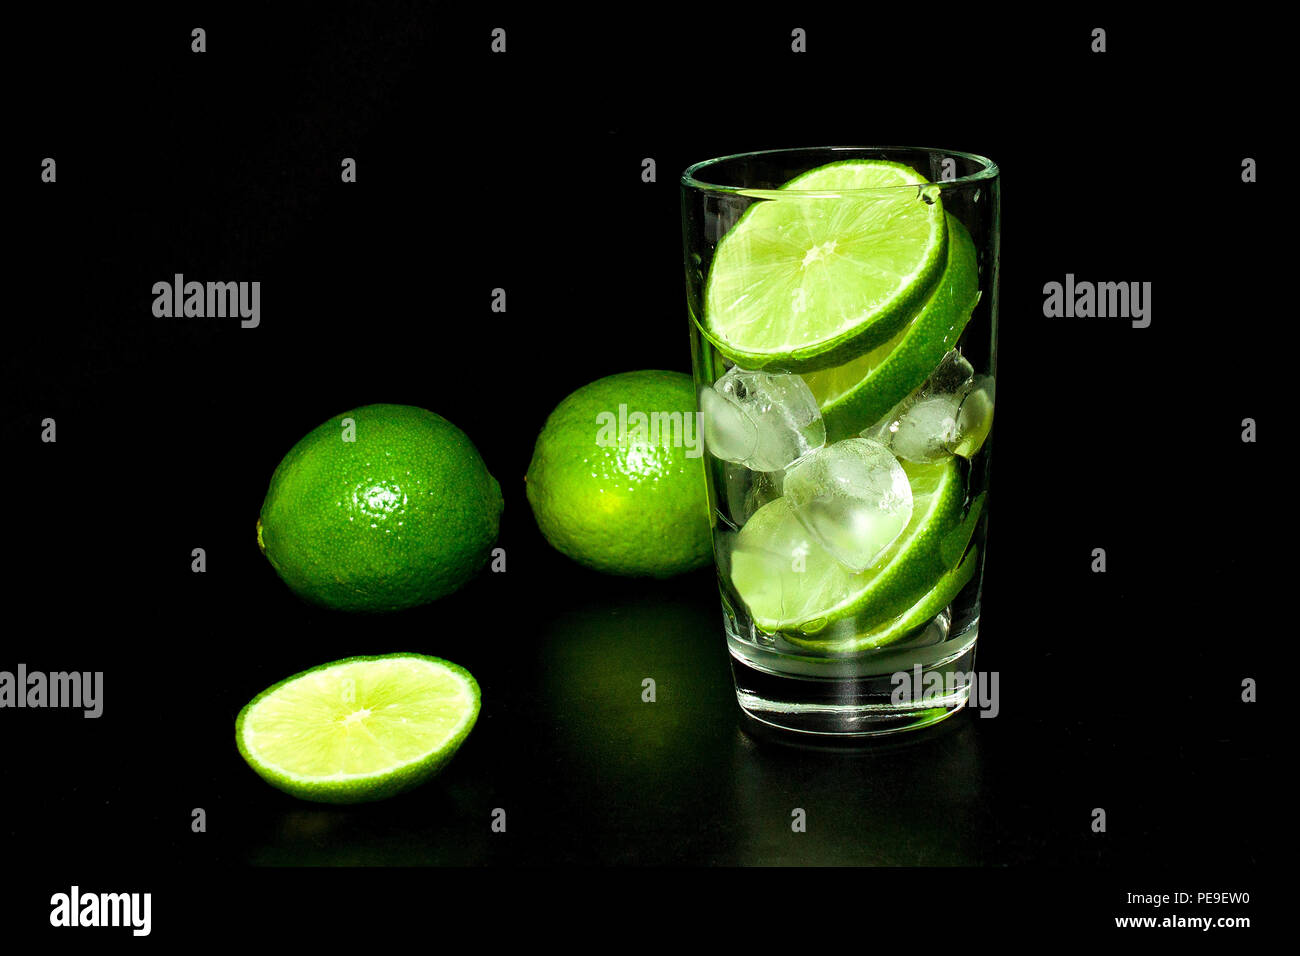 Glass with ice and fresh ripe green limes on black background. Preparation of lemonade. Mojito cocktail. Spring and summer refreshing and beverages co - Stock Image